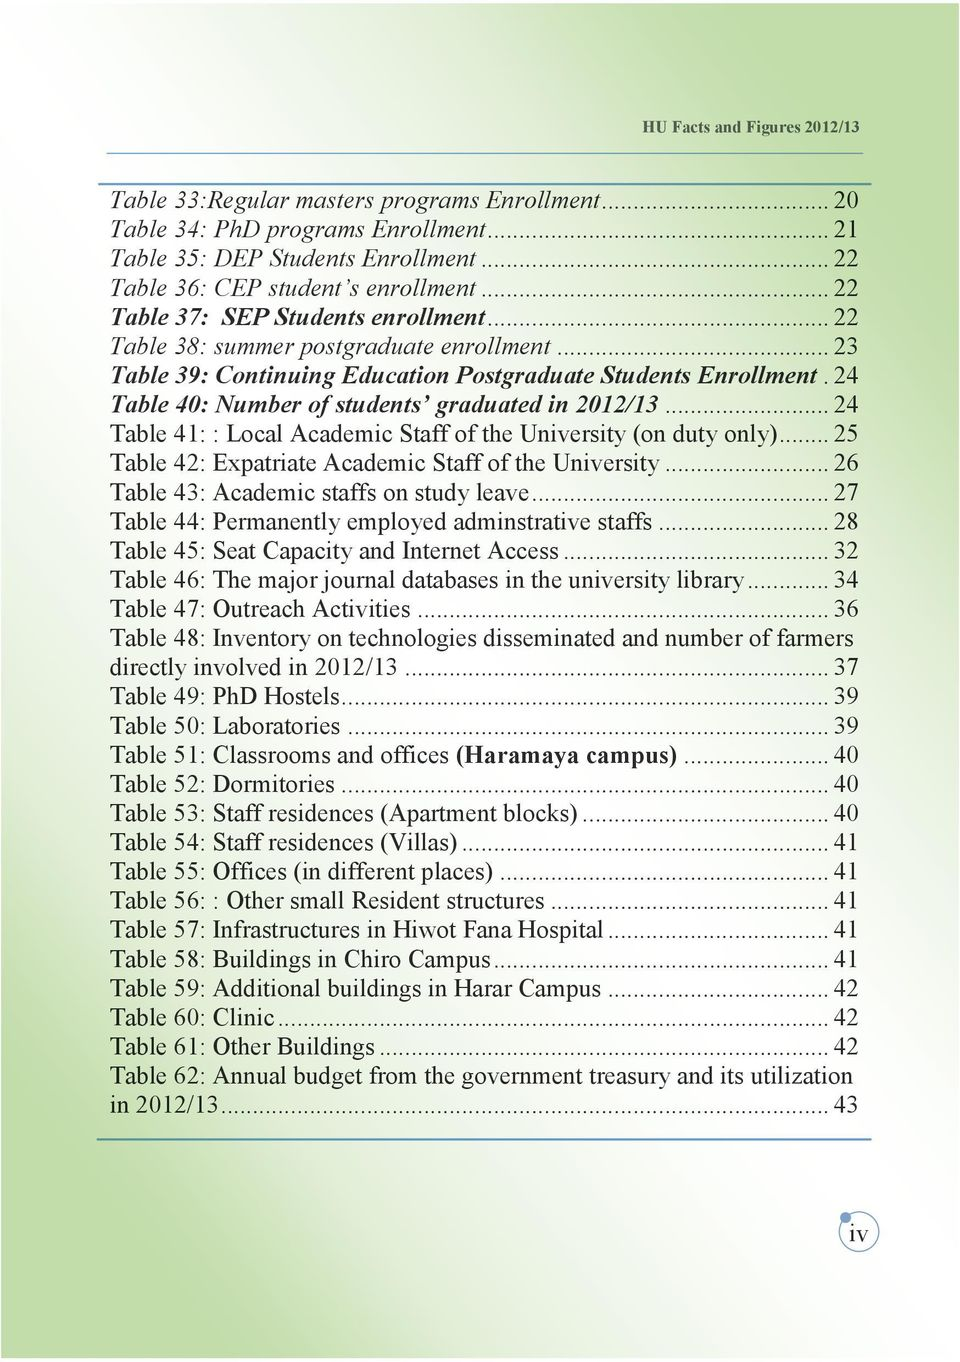 HARAMAYA UNIVERSITY FACTS AND FIGURES 2012/13 - PDF